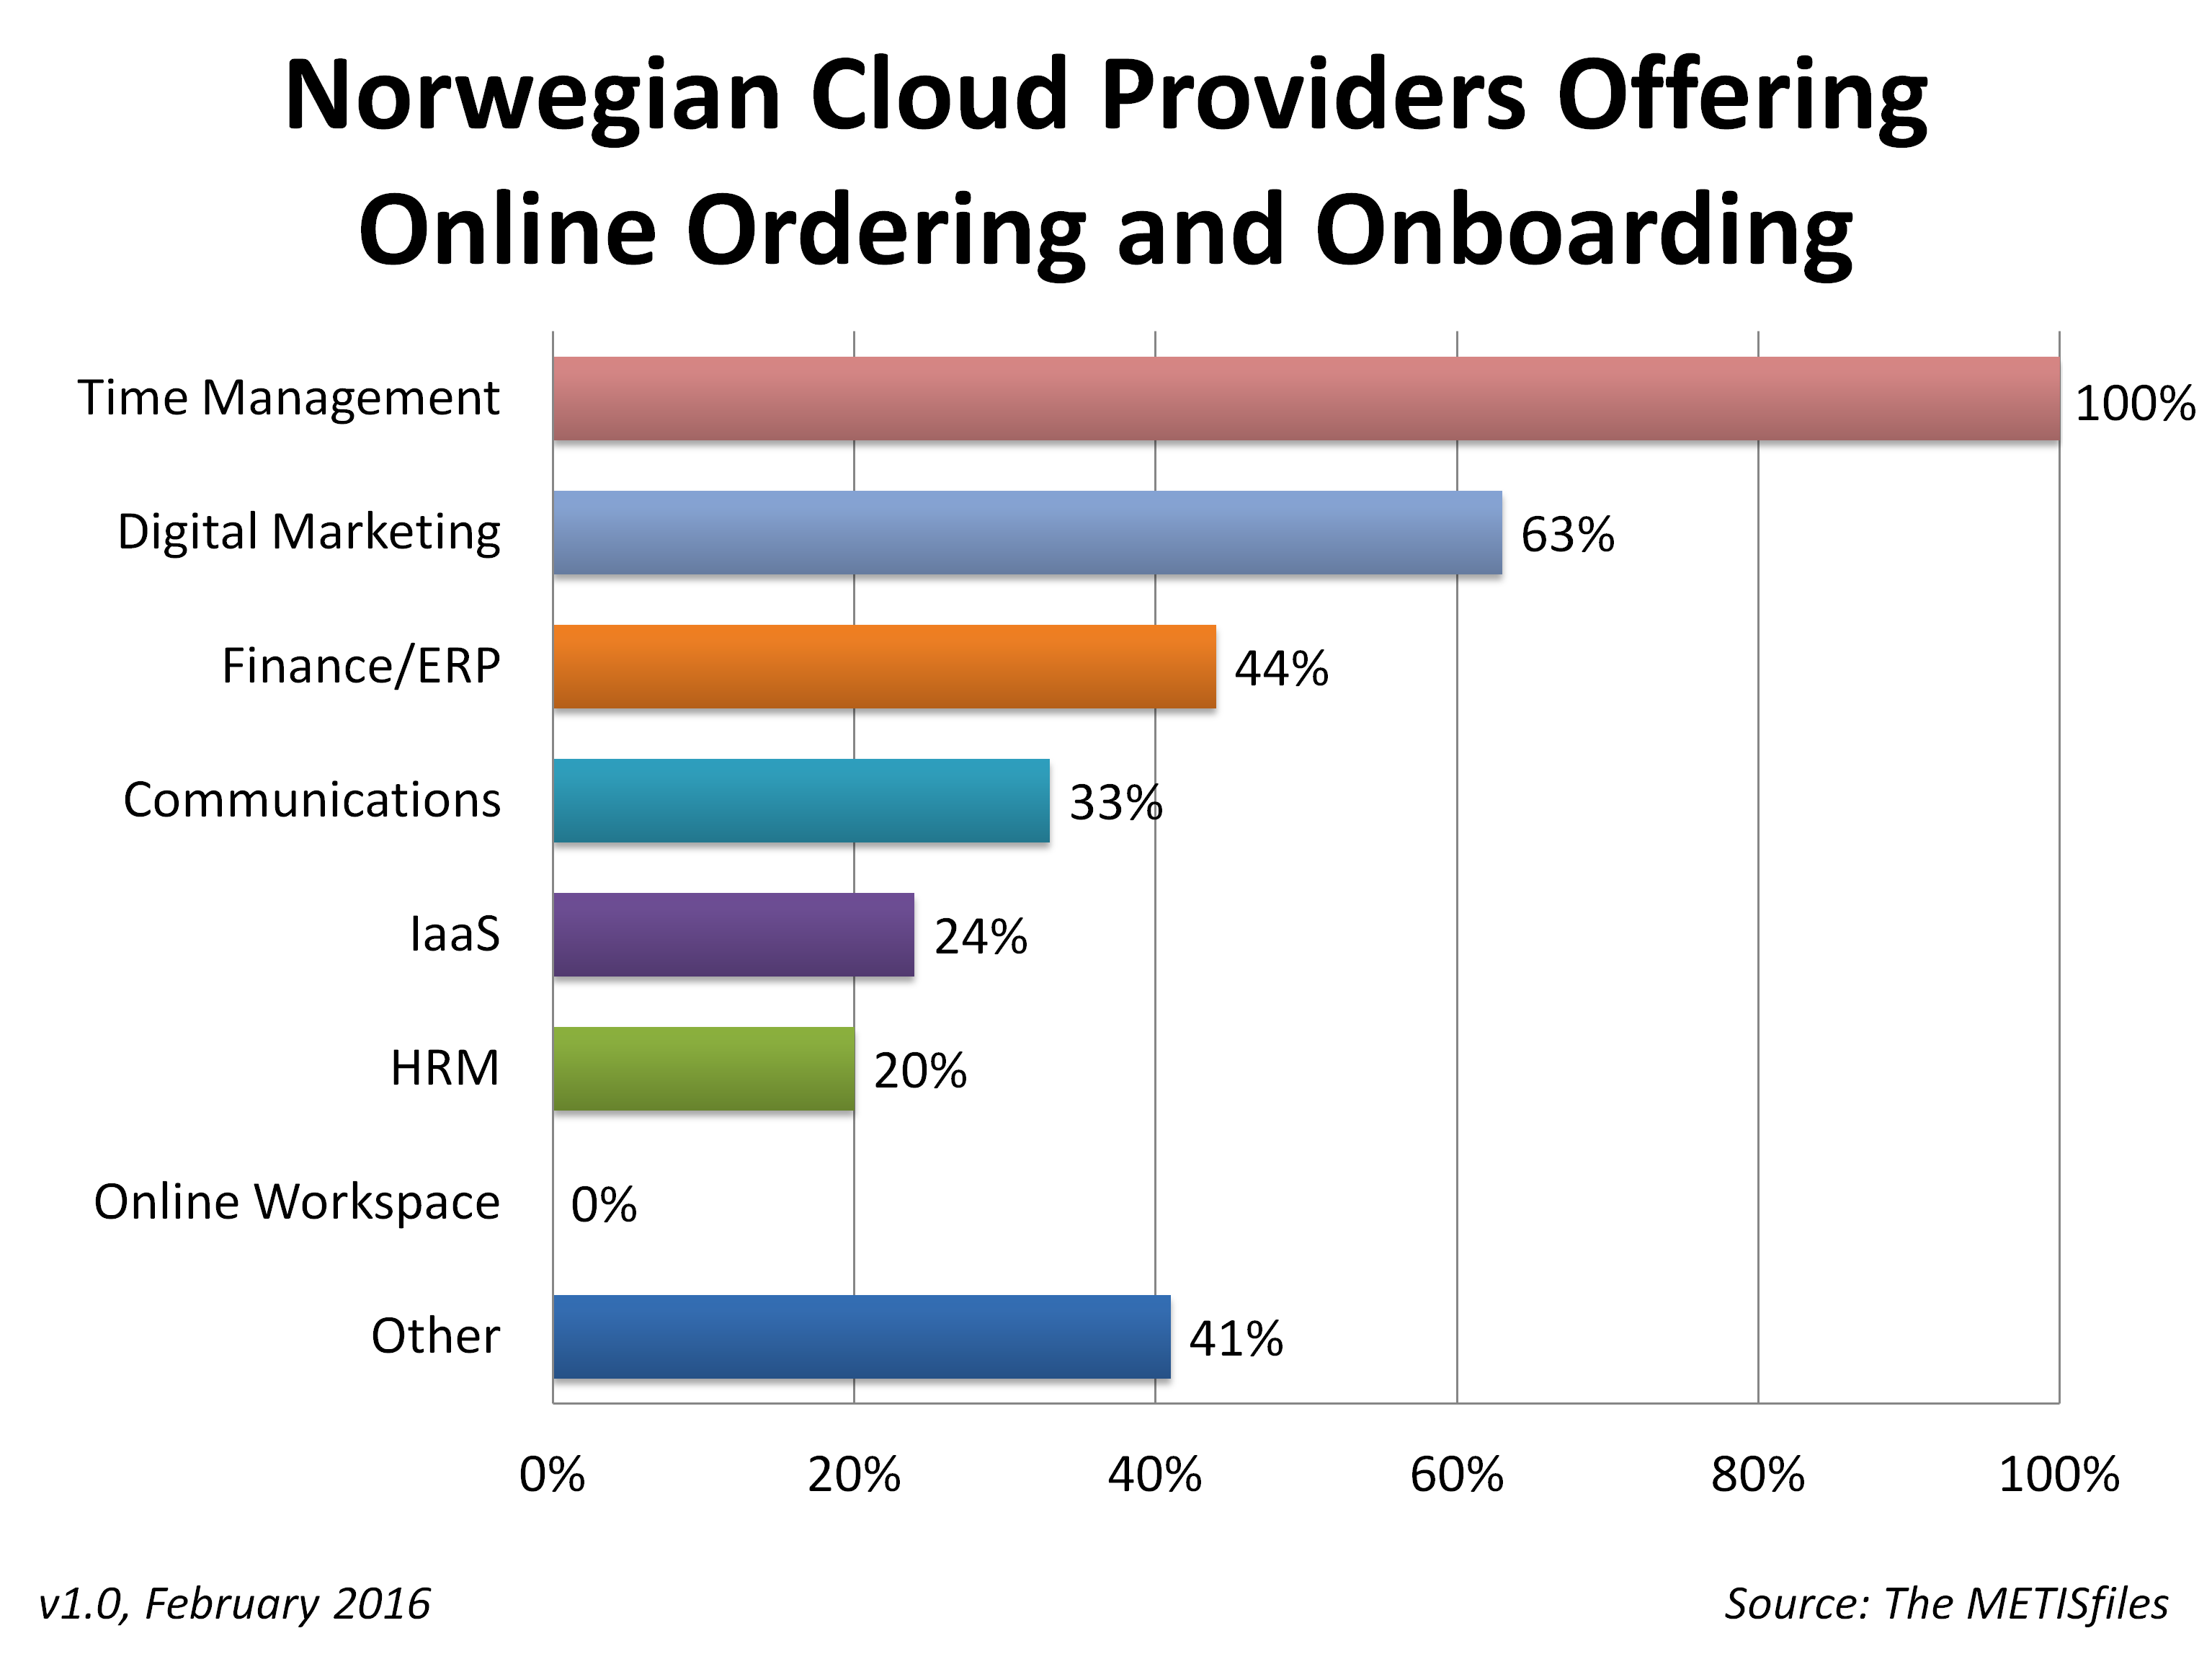 Norway Online Ordering